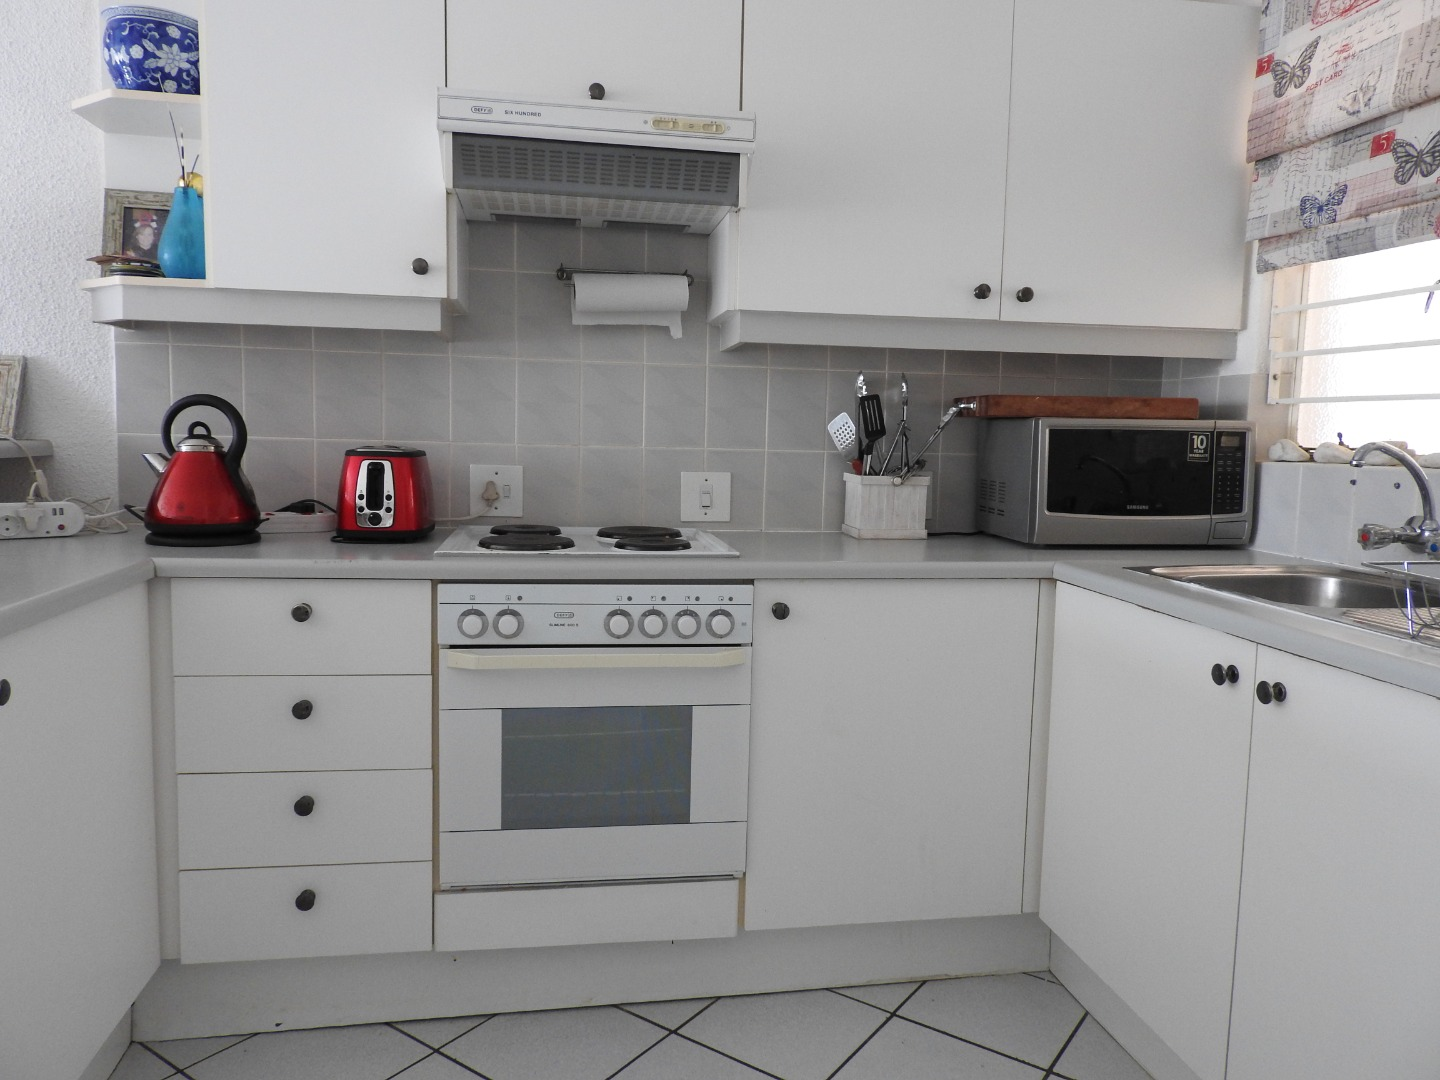 2 Bedroom Townhouse For Sale in Vaal Marina